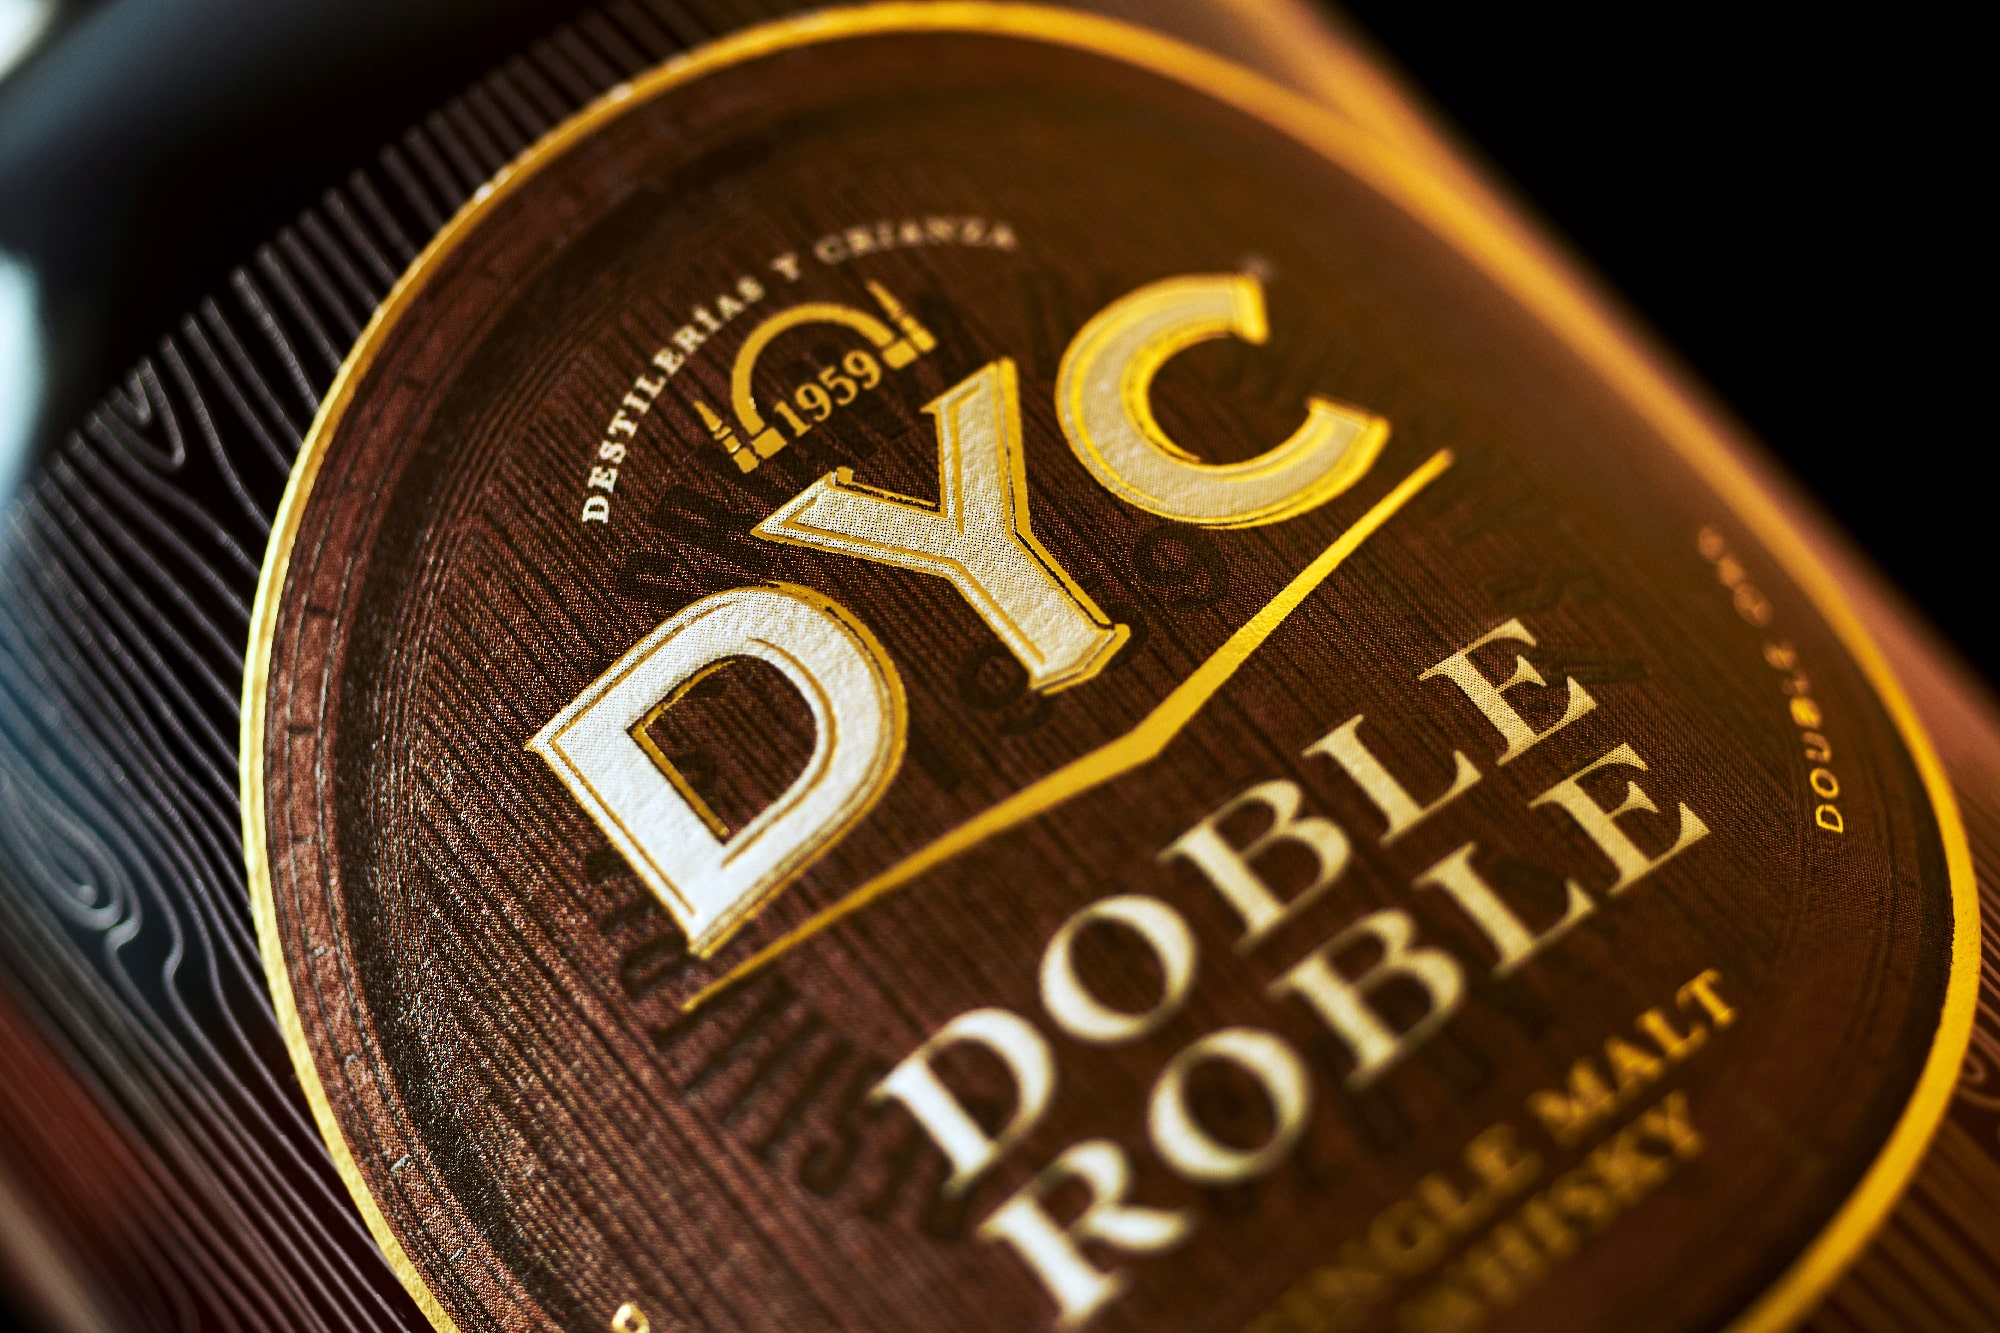 DYC Doble Roble Spanish Whiskey by Morillas Branding